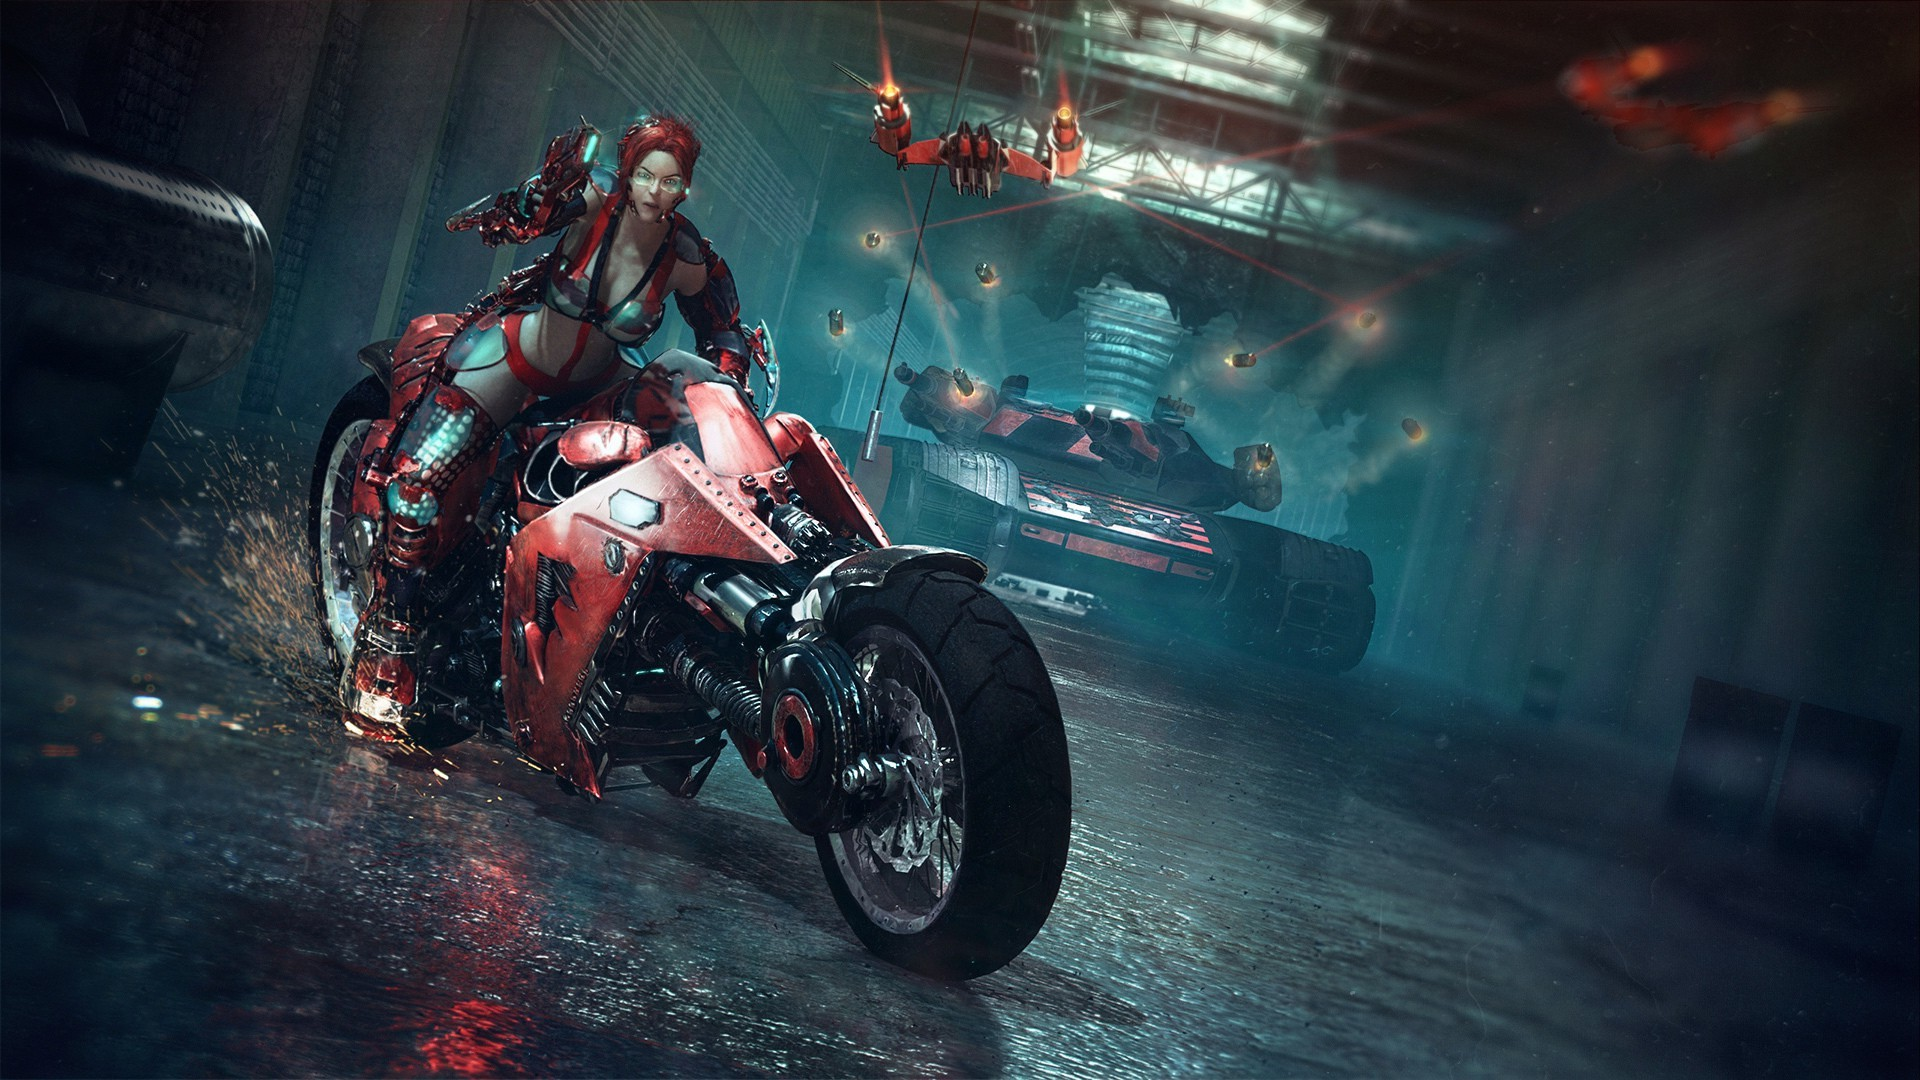 Cyberpunk wallpapers 87 images download wallpaper 3840x2160 cyberpunk 2077 cd projekt red ps4 voltagebd Images